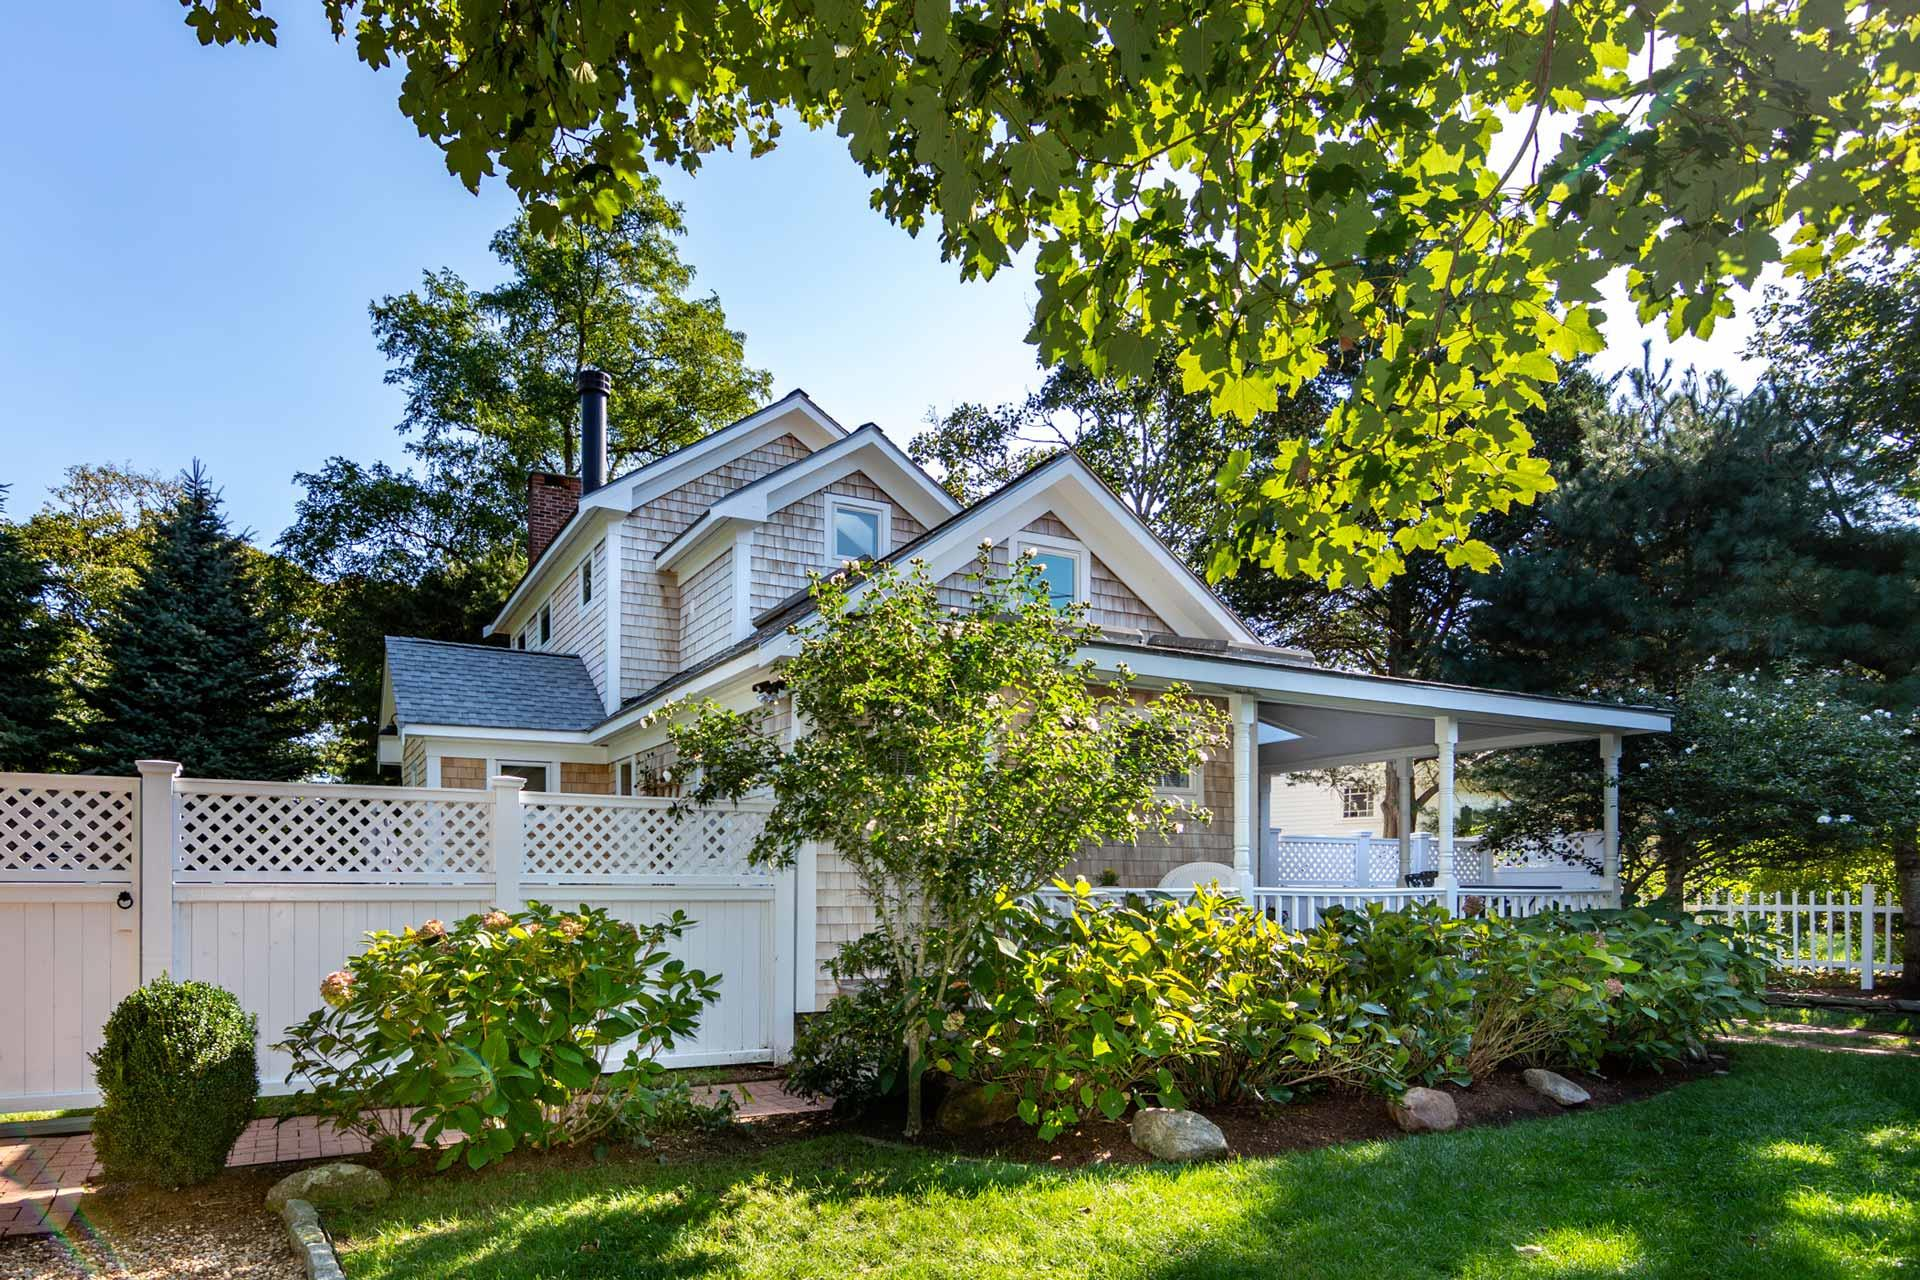 29 Pine Street, Edgartown Unit: Newly Listed